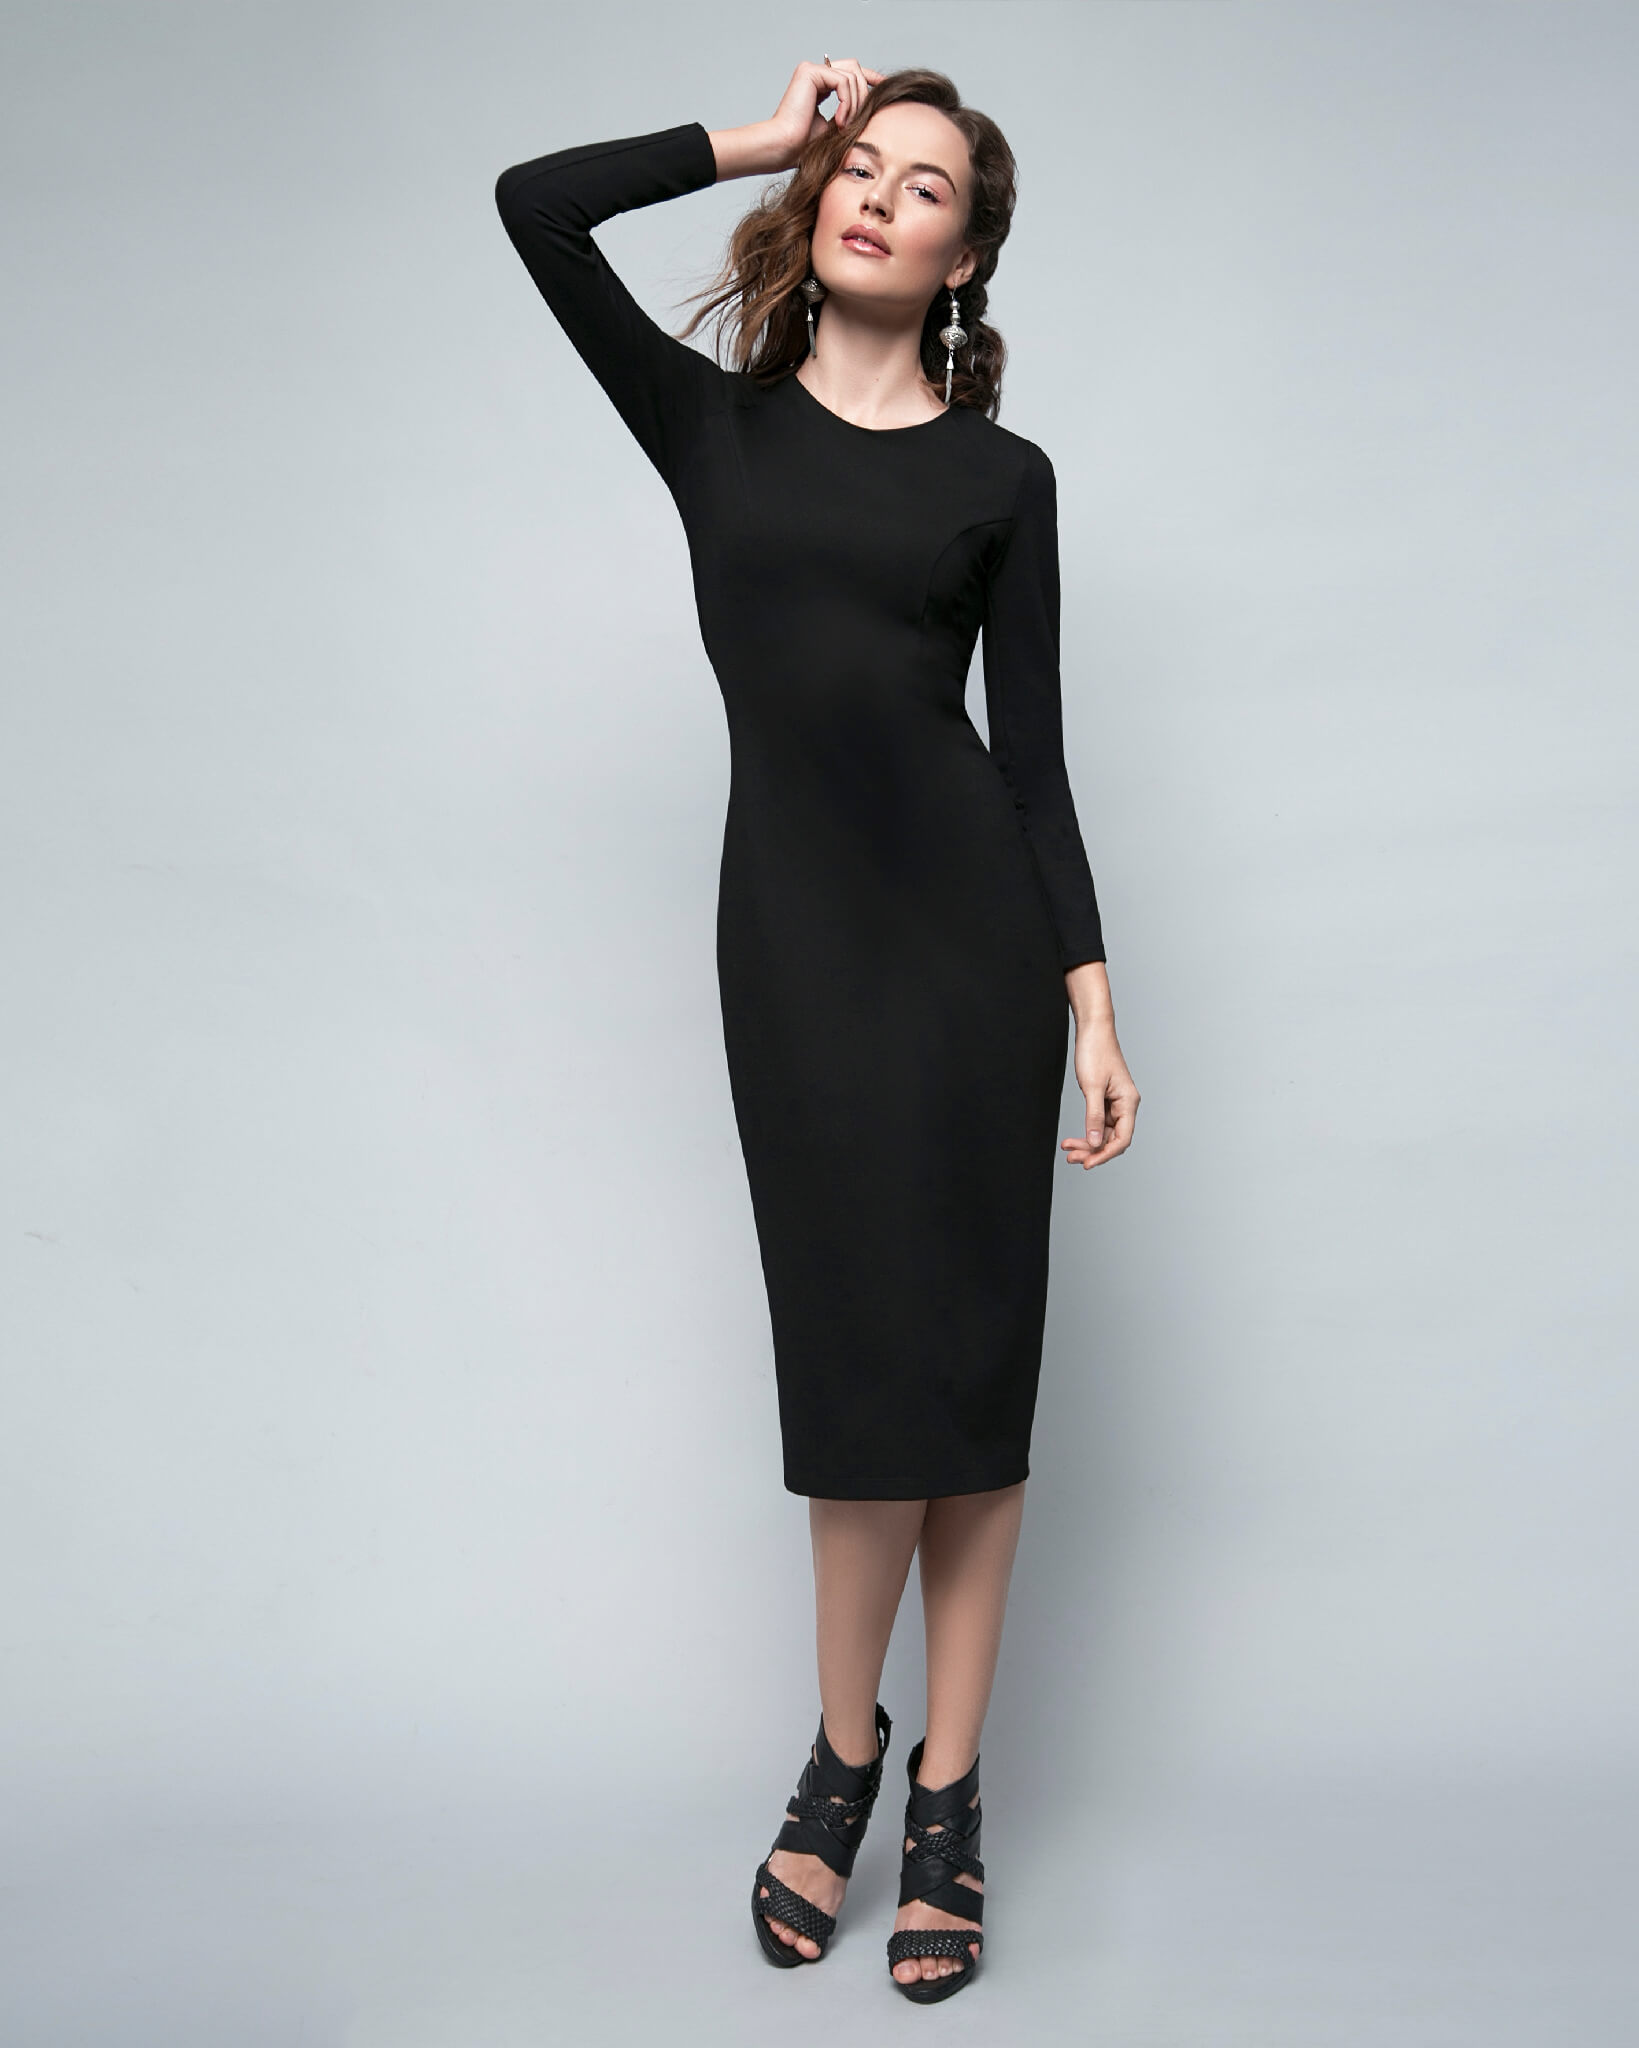 Never Let Me Go Midi Dress image featured